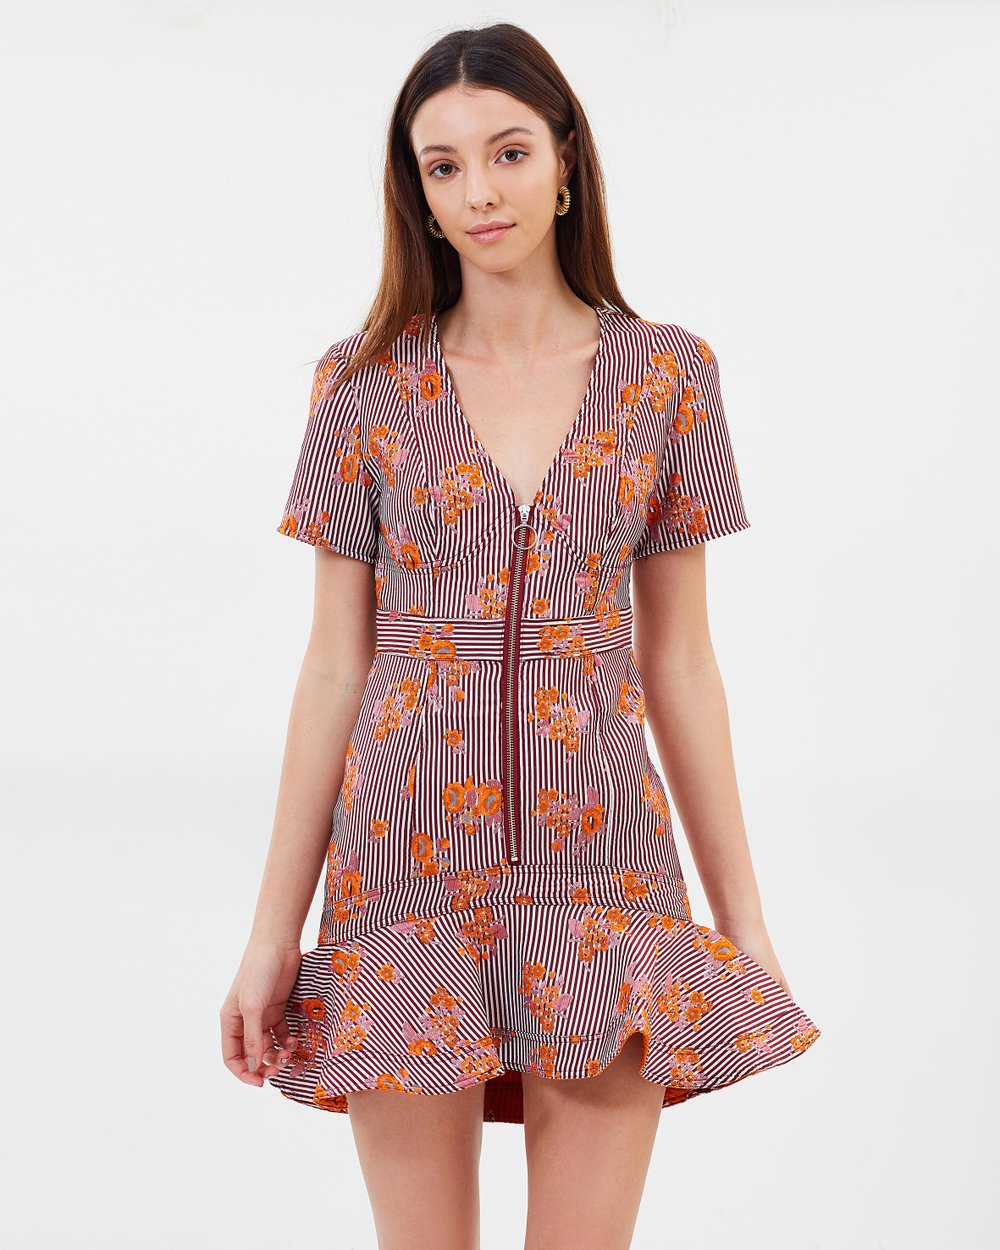 db12c1f4bb66 Fixation Mini Dress by C MEO COLLECTIVE Online